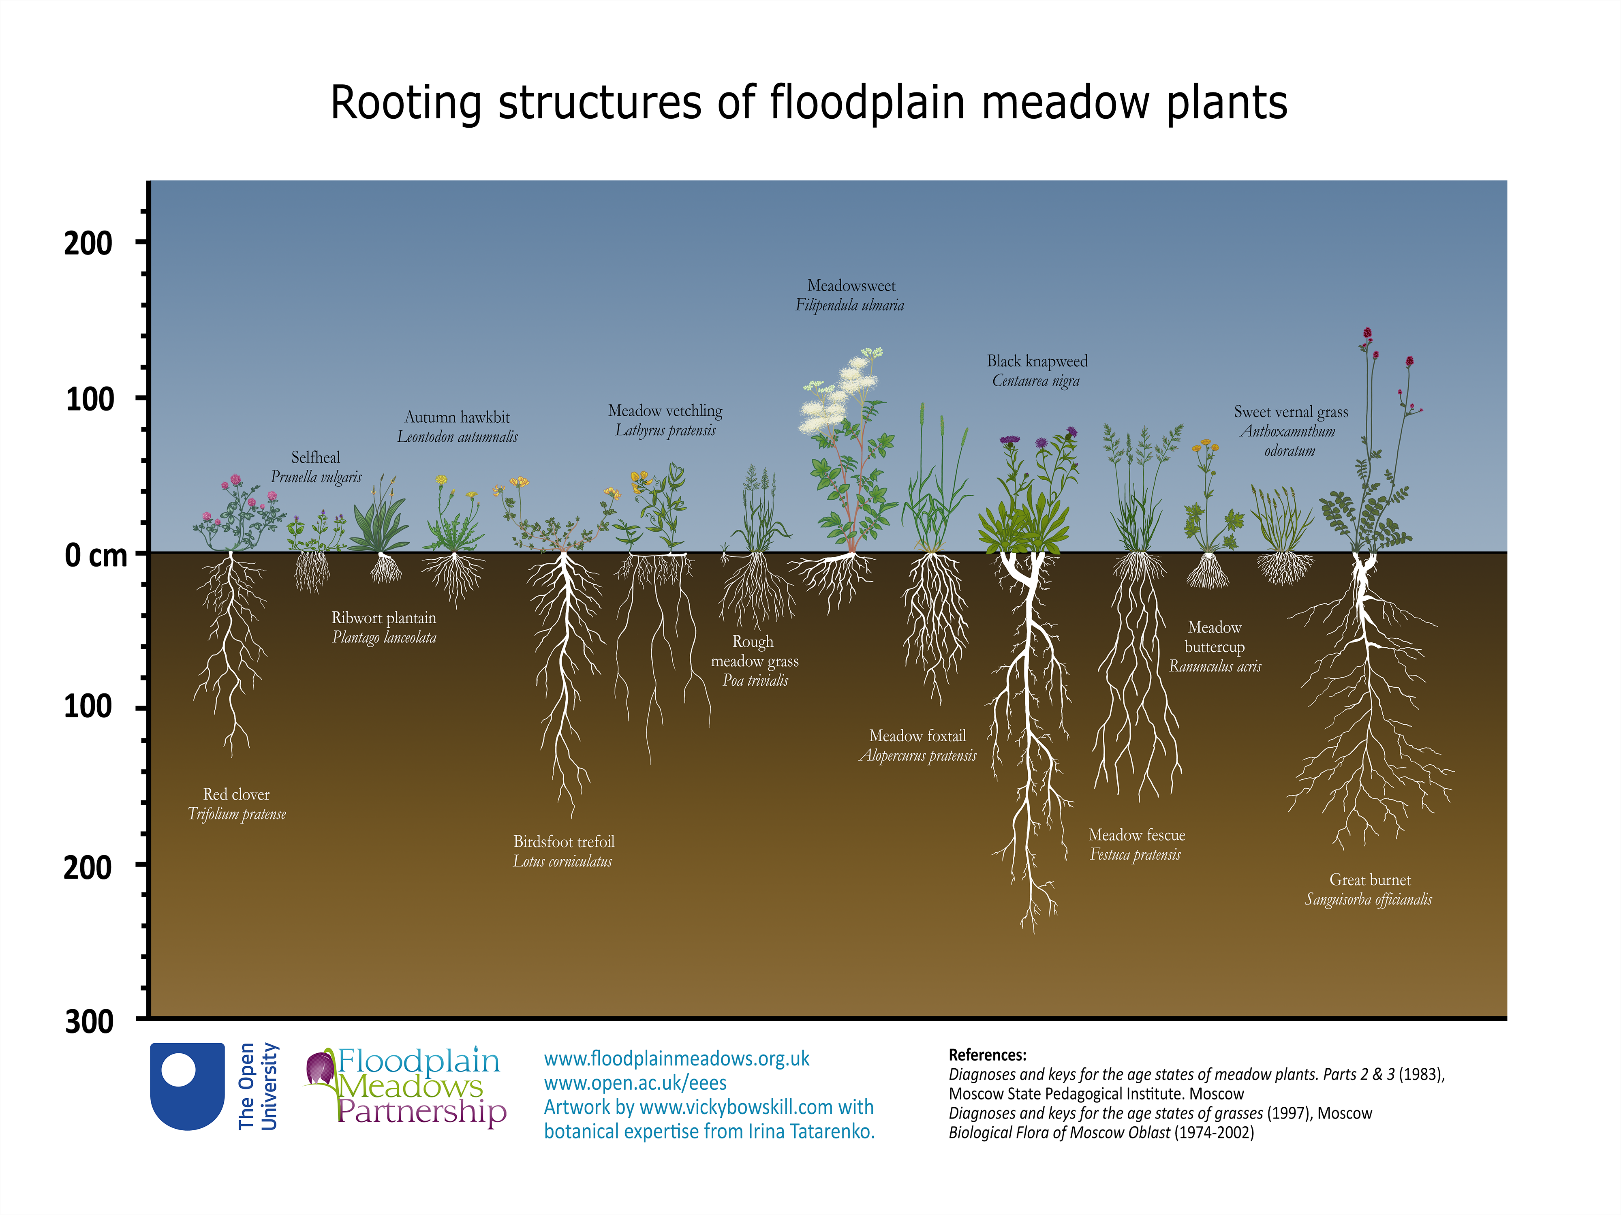 A diagram showing the rooting structures of floodplain meadow plants